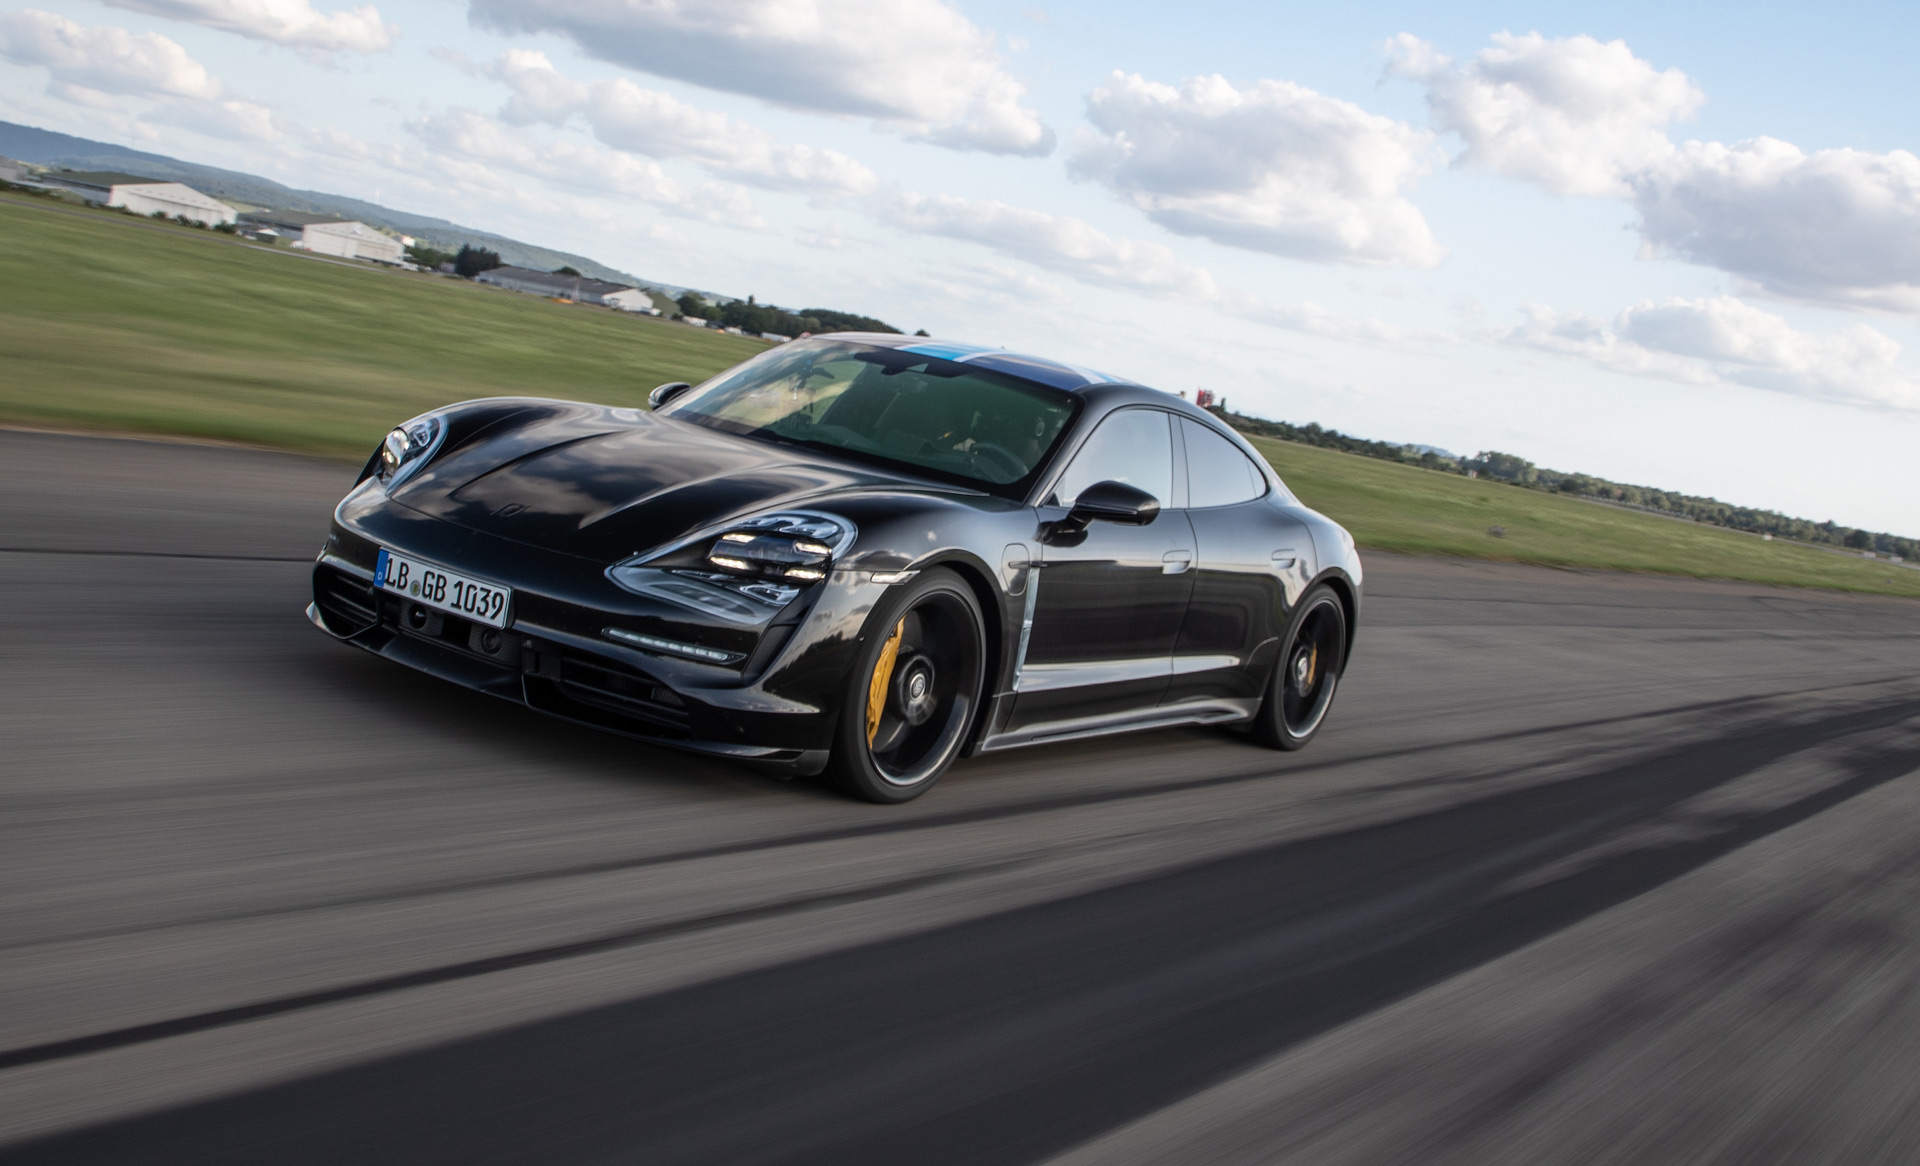 Porsche Taycan To Be Revealed Sept. 4, Watch Livestream Here